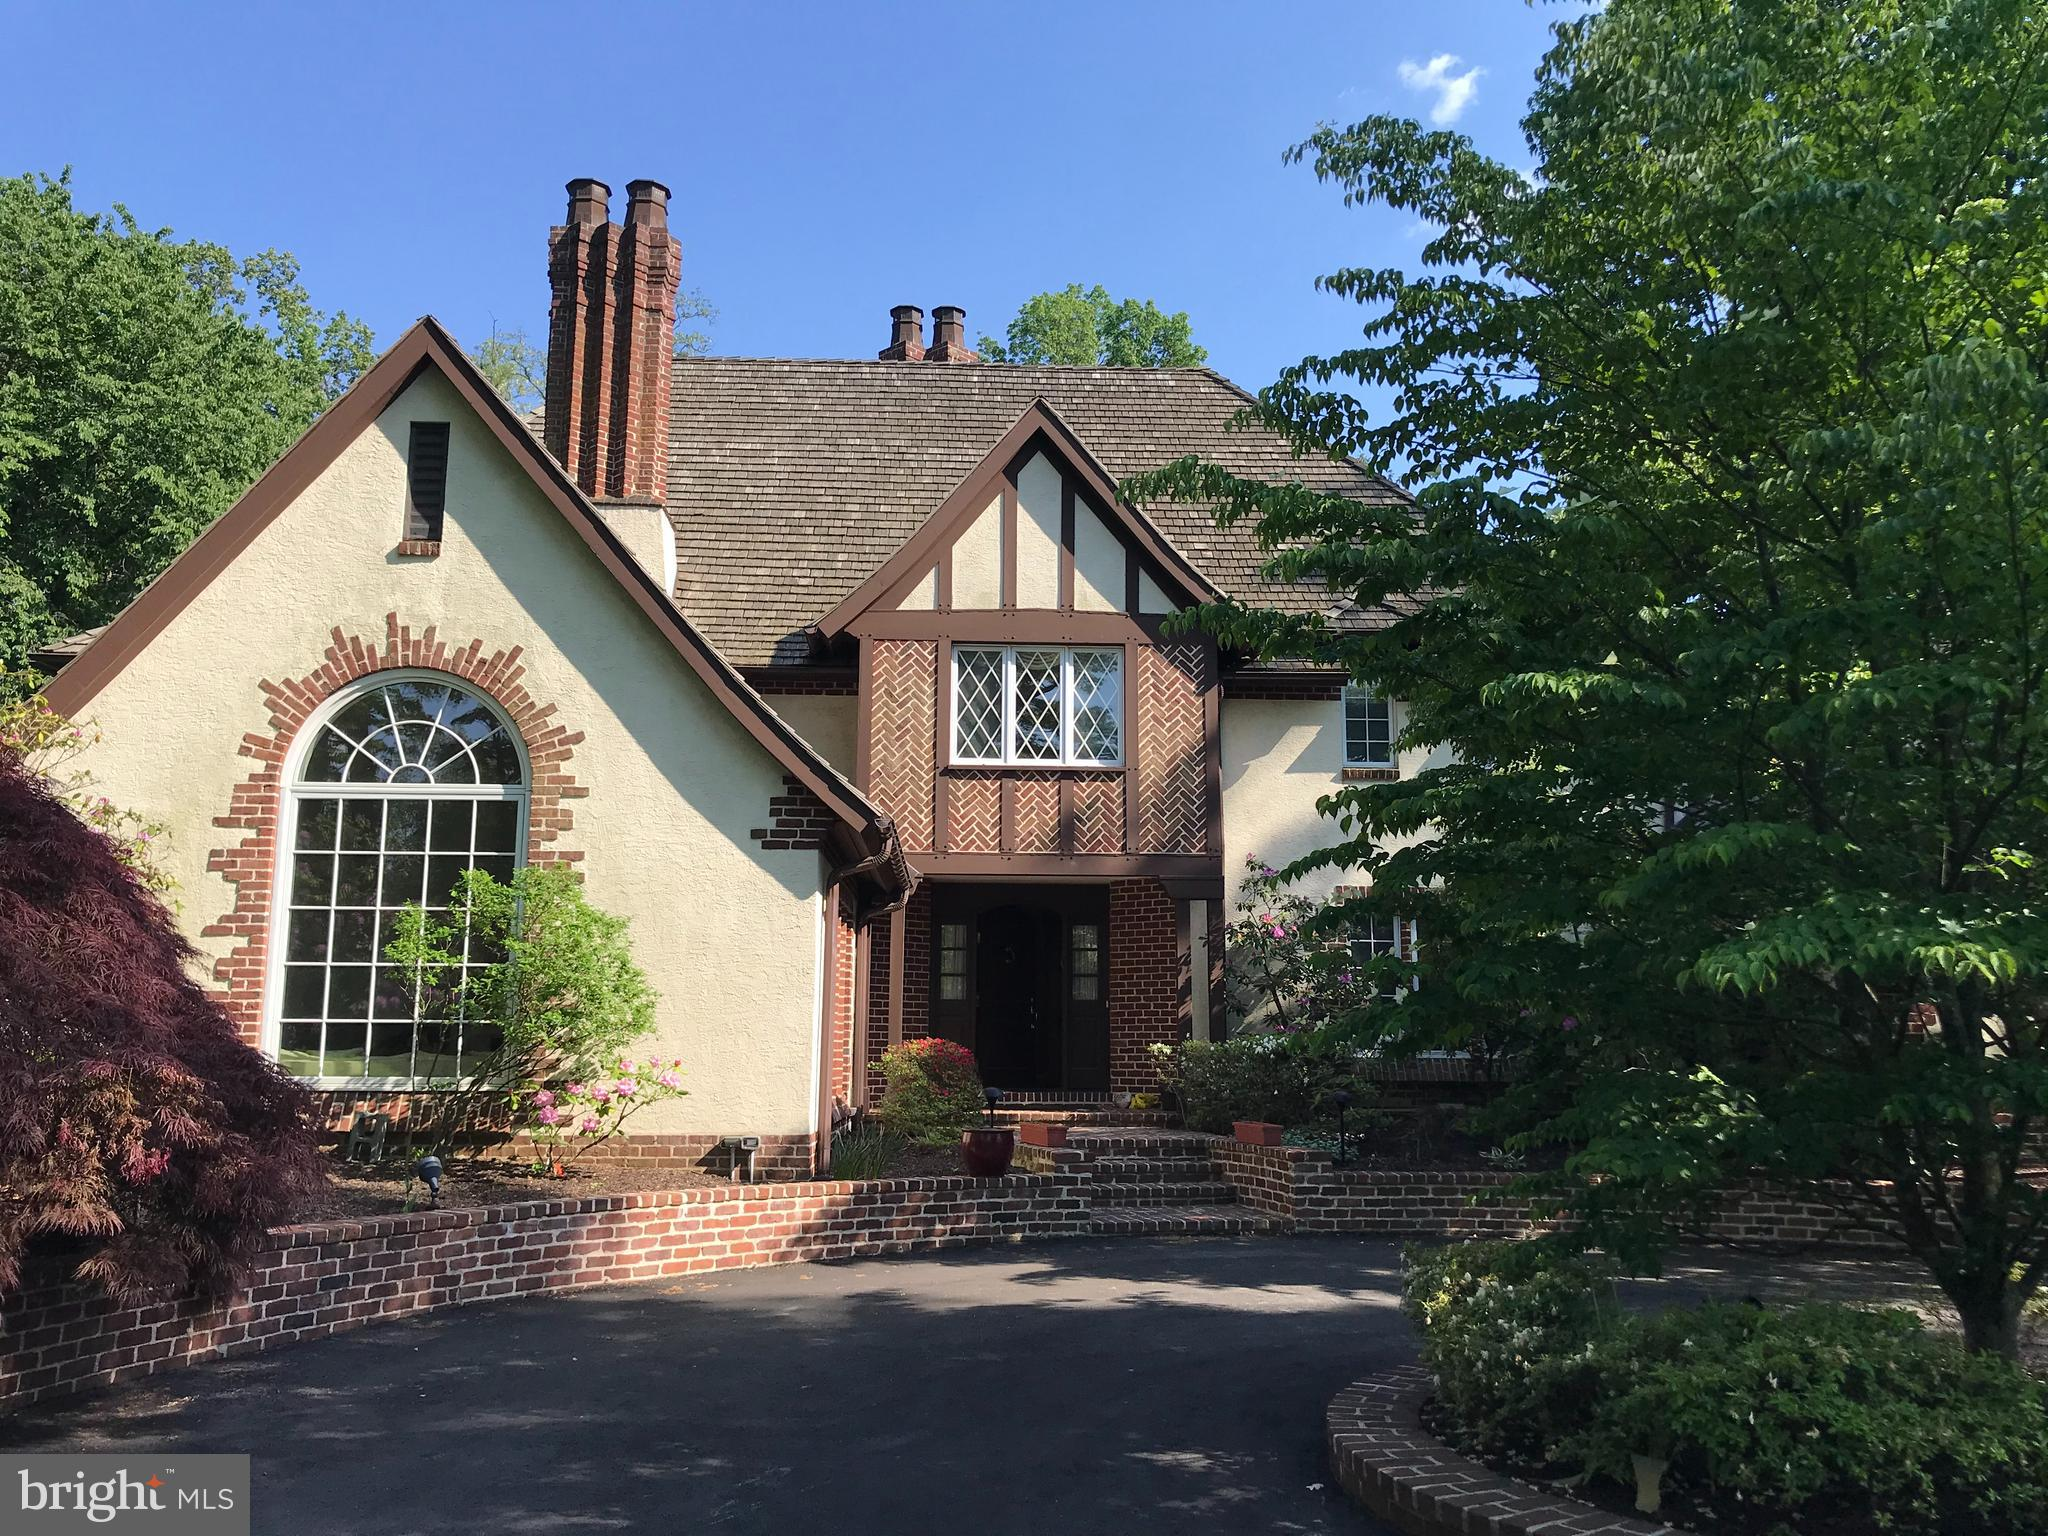 """Welcome to the """"One of a Kind"""" Custom Tudor Home in Prestigious Villanova.  This wonderful home is situated on a picturesque 1.33 acre lot offering an abundance of privacy and exquisite landscaping.  The exterior of this elegant home features a circular driveway and beautiful architectural details.  This """"One of a Kind"""" home has a rear patio with awning that is very inviting and creates a sense of Tranquility. This property has been meticulously maintained inside and outside. 705 Cedar Lane offers 4 bedrooms and 3 ½ baths. Exquisite craftsmanship throughout with detailed moldings and millwork.  2 Fireplaces, Beautiful pegged hardwood Floors and also a much sought after bedroom suite on the main level.  The Bedroom Suite on the Main Level features a large Bathroom and generous closet Spaces. On the Second Level you will find a Large Main Bedroom suite with abundant closet spaces and lovely Au-suite bathroom.  Two other bedrooms on this level with a Jack and Jill Bathroom. Highlights include: a large family room with Fireplace (gas insert) Cathedral Ceiling with Trusses and Built-in wet bar.  A Gourmet Kitchen  that would delight any chef with it's Custom Cabinetry, Granite Countertops, Sub-zero refrigerator and separate full size Sub-zero Freezer; Bosch 5 burner gas range, along with 2 Bosh wall ovens and Bosh dishwasher, Microwave and Wine Cooler. The kitchen also features a Center Island and a generous Breakfast room area with French Doors that lead out to the inviting patio which is perfect for dining """"Al Fresco"""". The Living Room features 15 ft. ceilings, large Palladium window and wood burning fireplace. Large Formal Dining Room perfect for Holiday Festivities. Powder Room on this Main Level.  The flow to the Floor Plan and The magnificent outdoor spaces make this home a perfect place for entertaining and active Living.  The lower level is finished and perfect for an At Home Gym or Recreation Room.  Large full Attic with easy access staircase and over-sized cedar"""